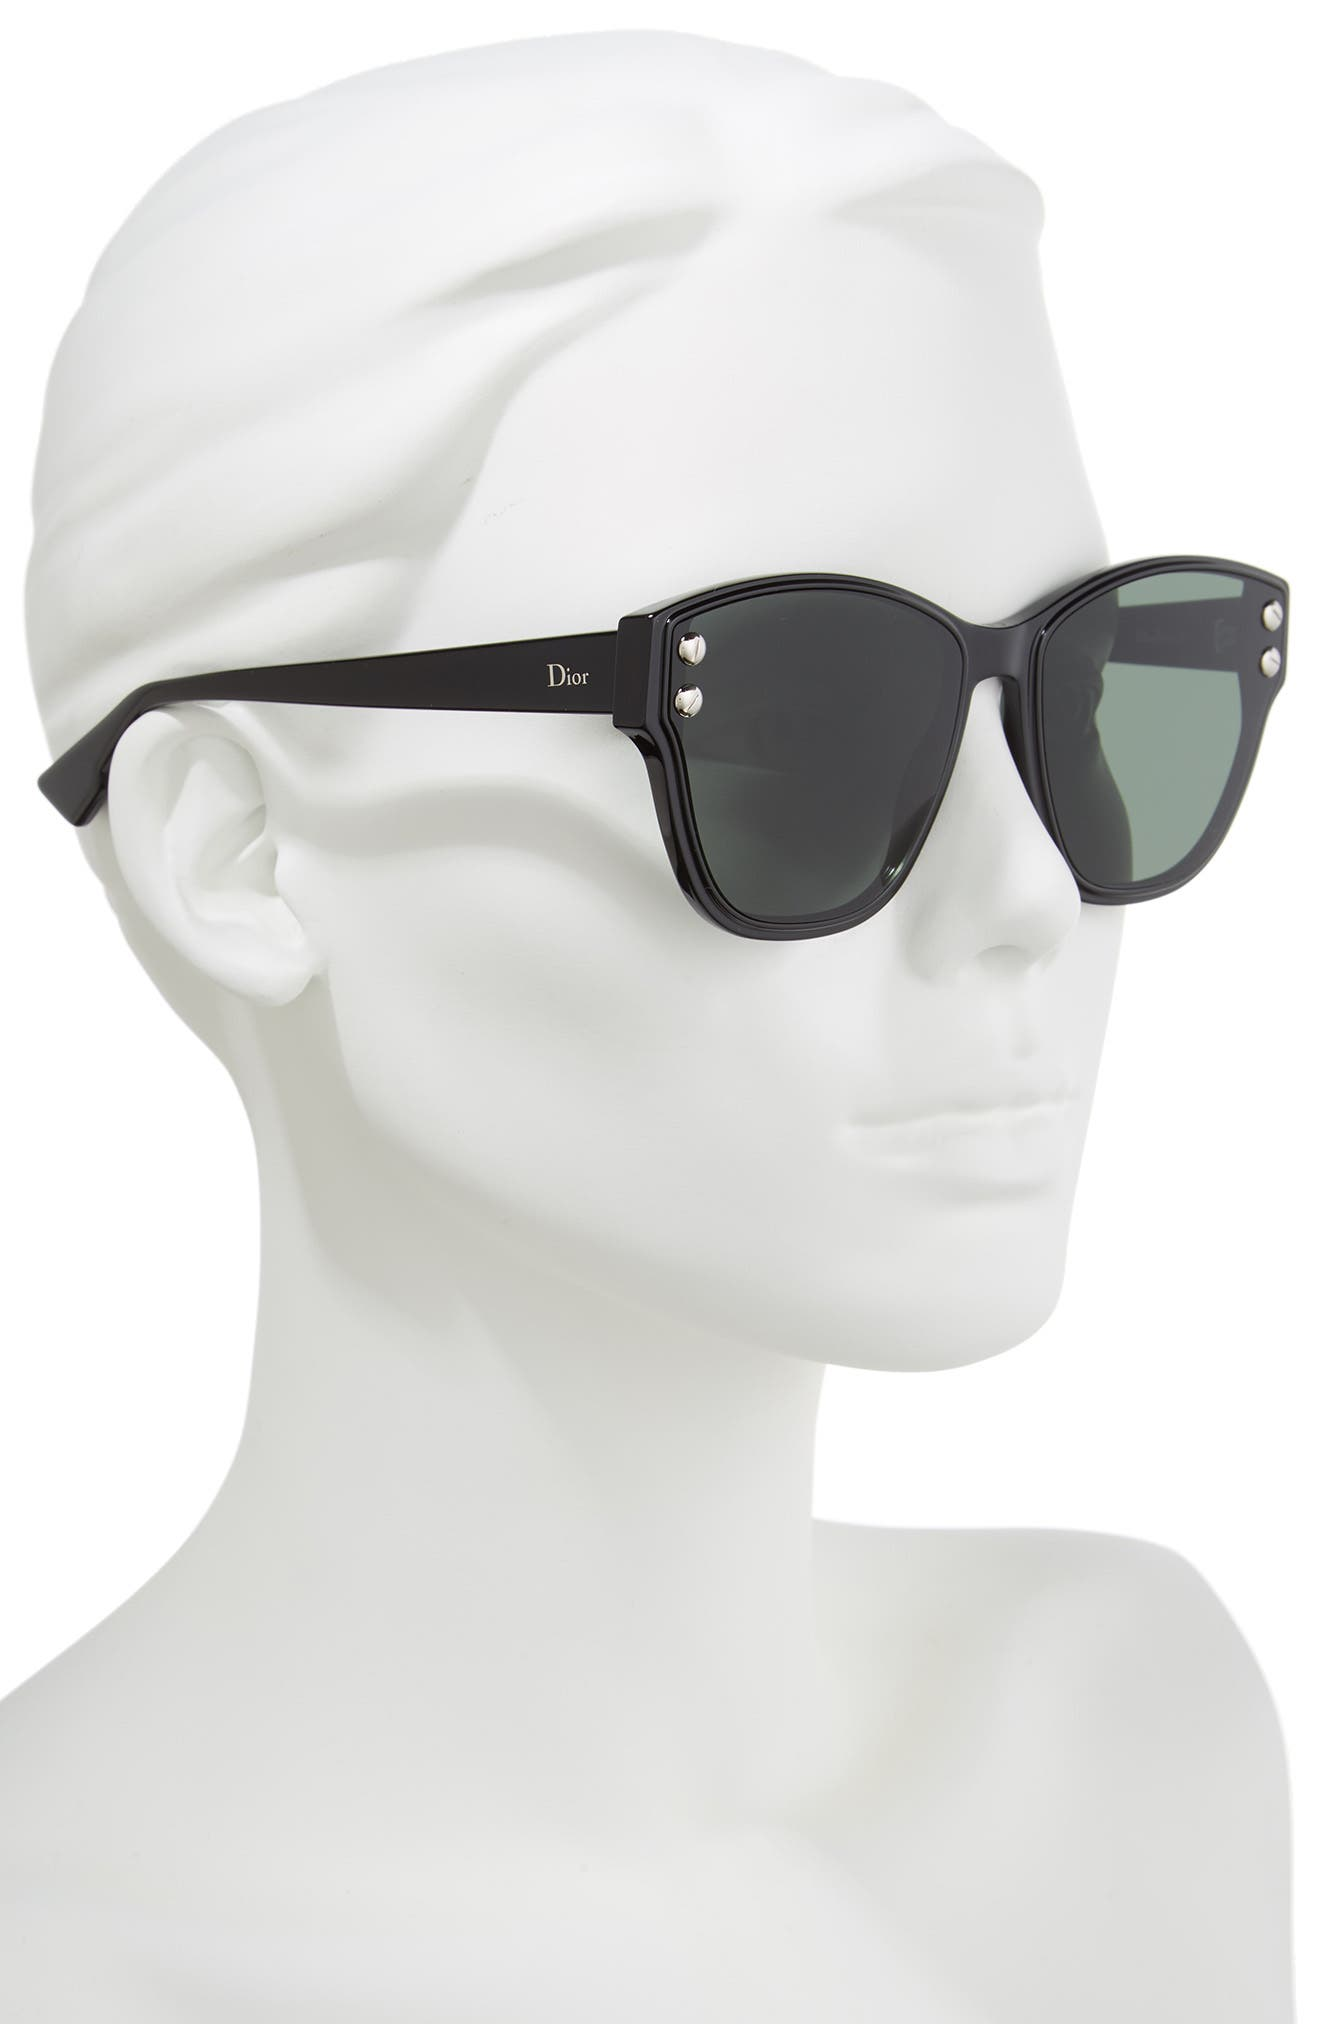 60mm Sunglasses,                             Alternate thumbnail 2, color,                             001